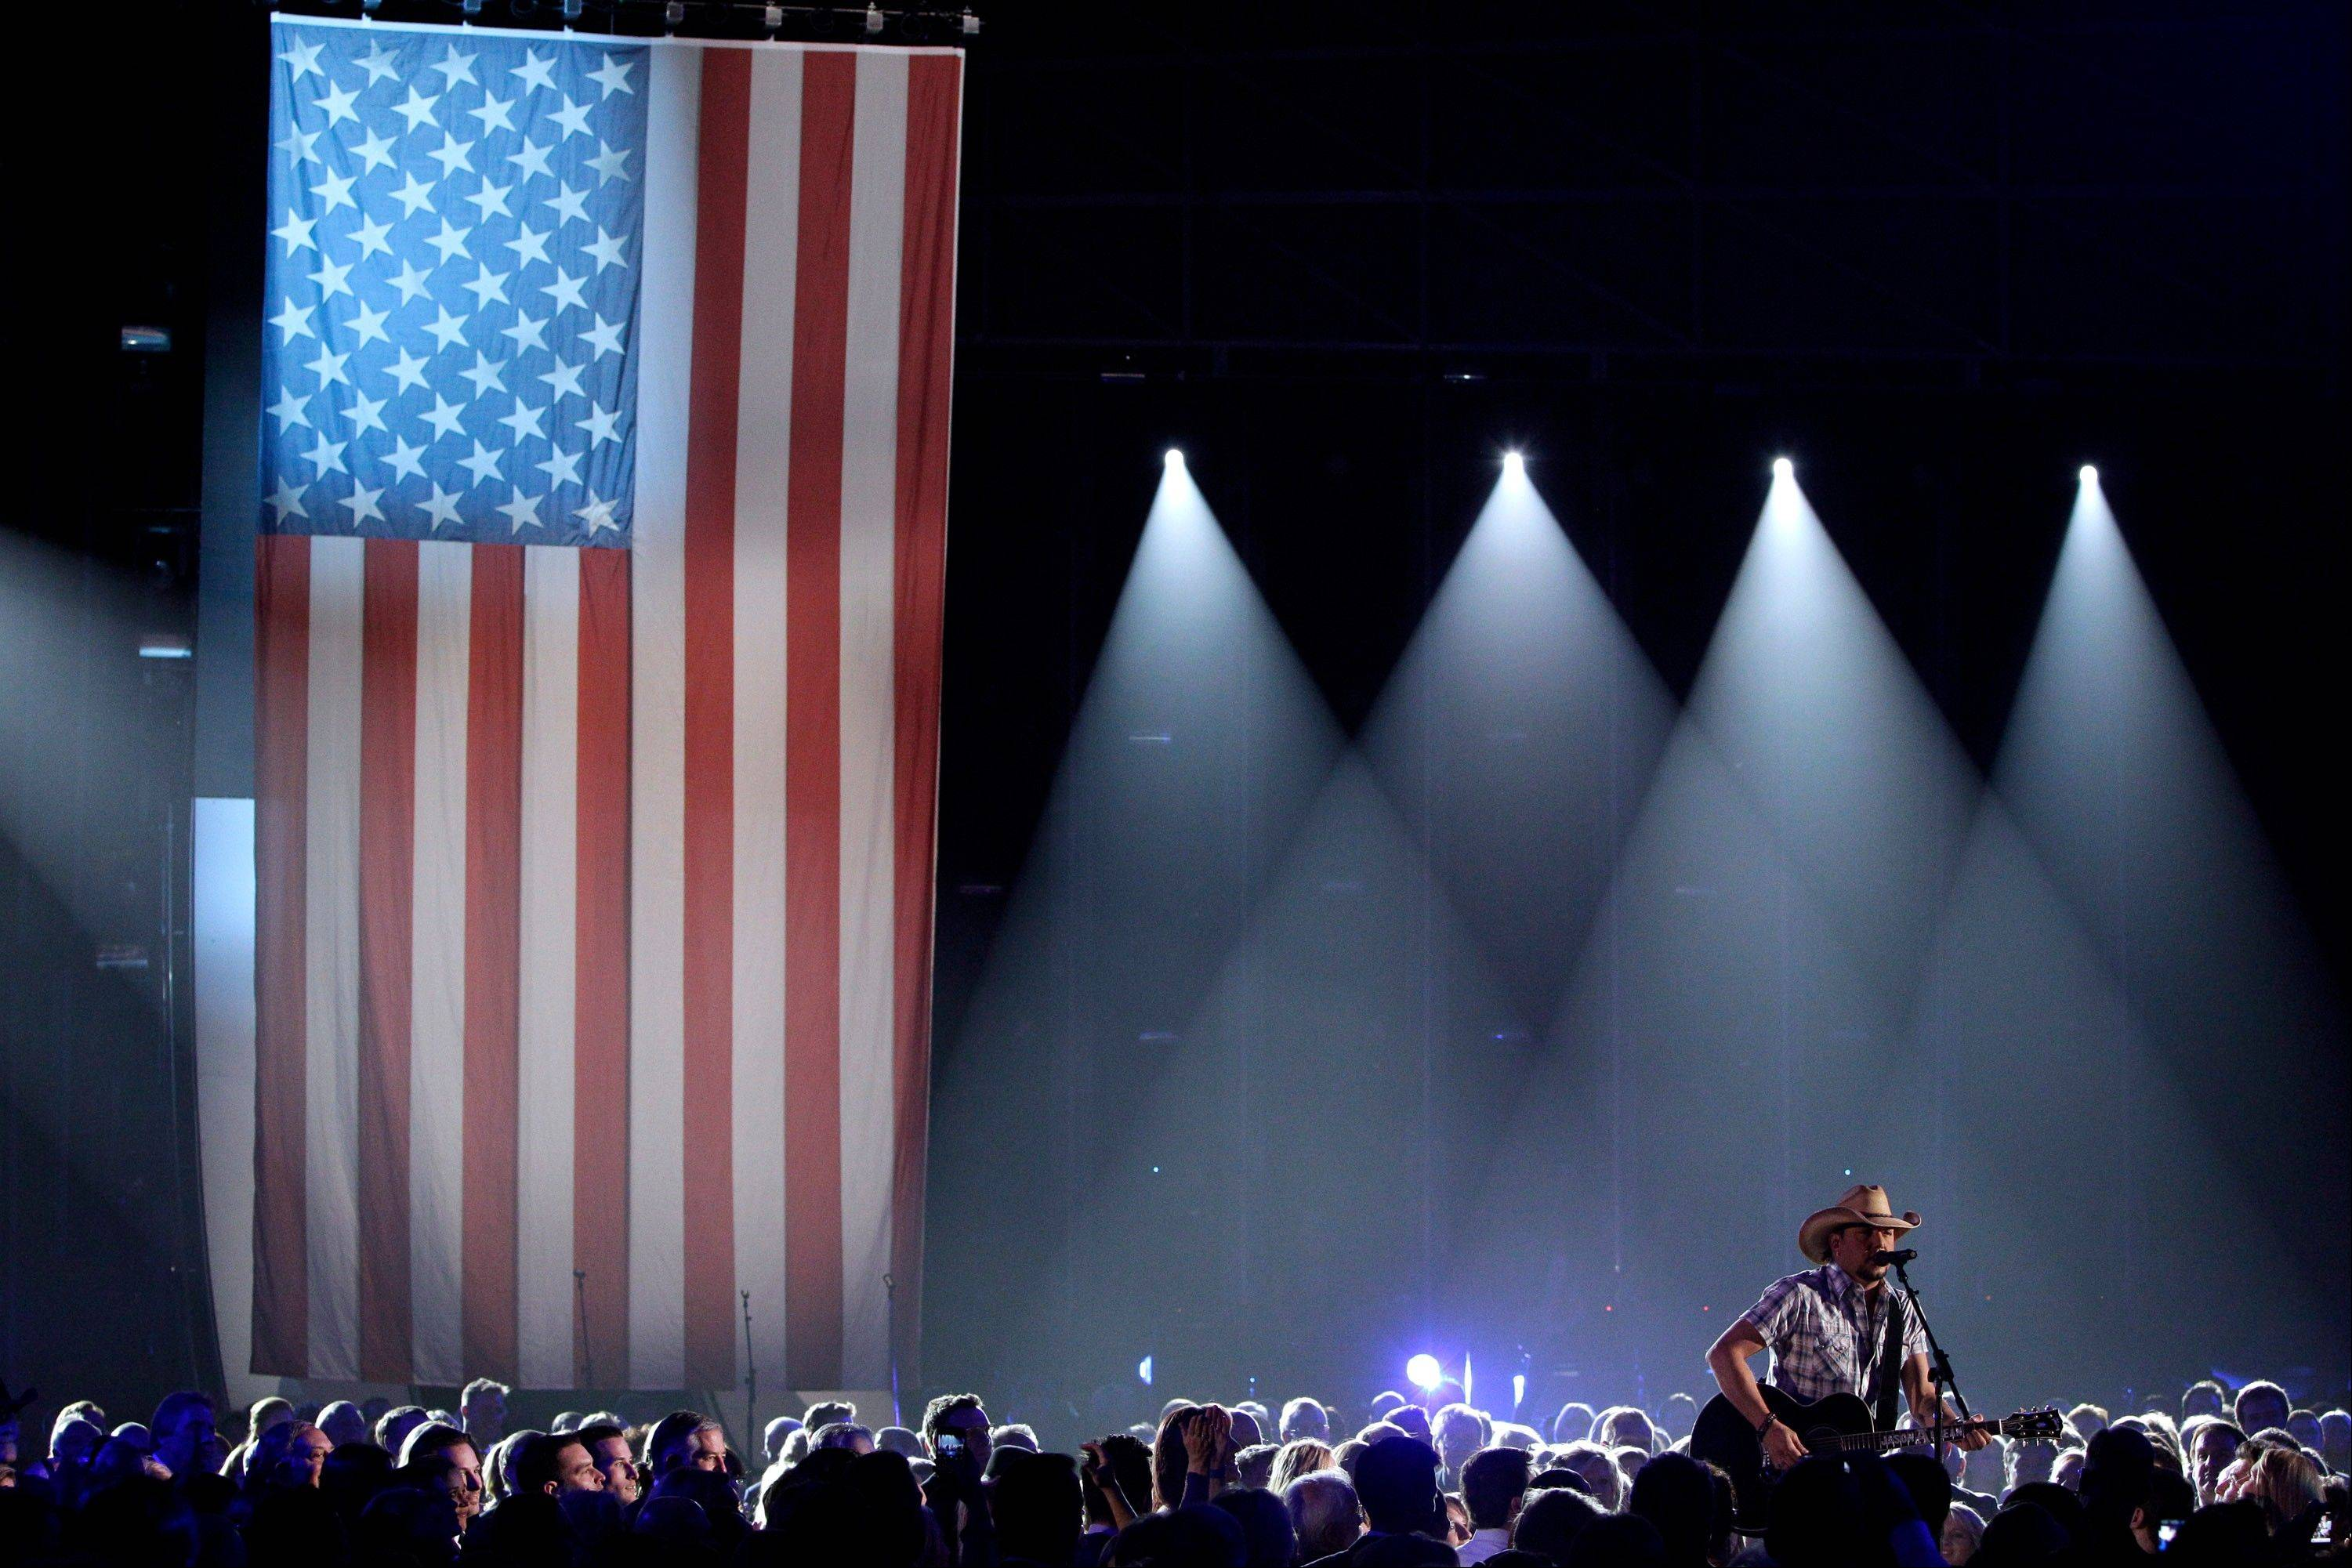 Jason Aldean performs during the opening of the 46th Annual Country Music Awards at the Bridgestone Arena on Thursday, Nov. 1, 2012, in Nashville, Tenn.